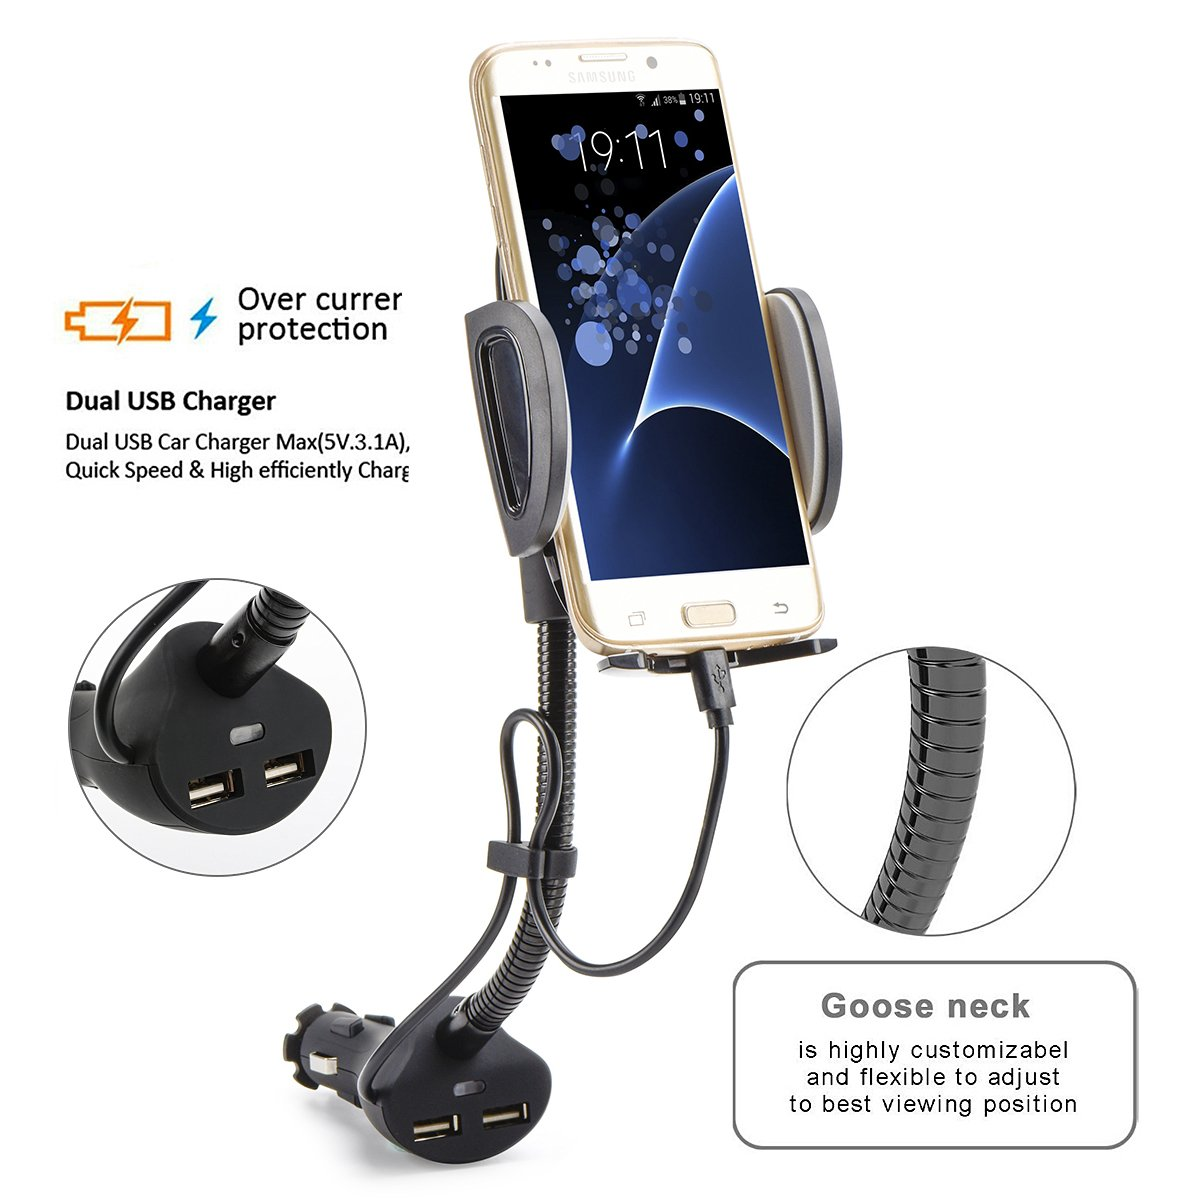 AUOPLUS Cigarette Lighter Phone Holder Car Mount Charger 3.1A Dual USB Ports with Built-in Charging Cord for Android by AUOPLUS (Image #7)